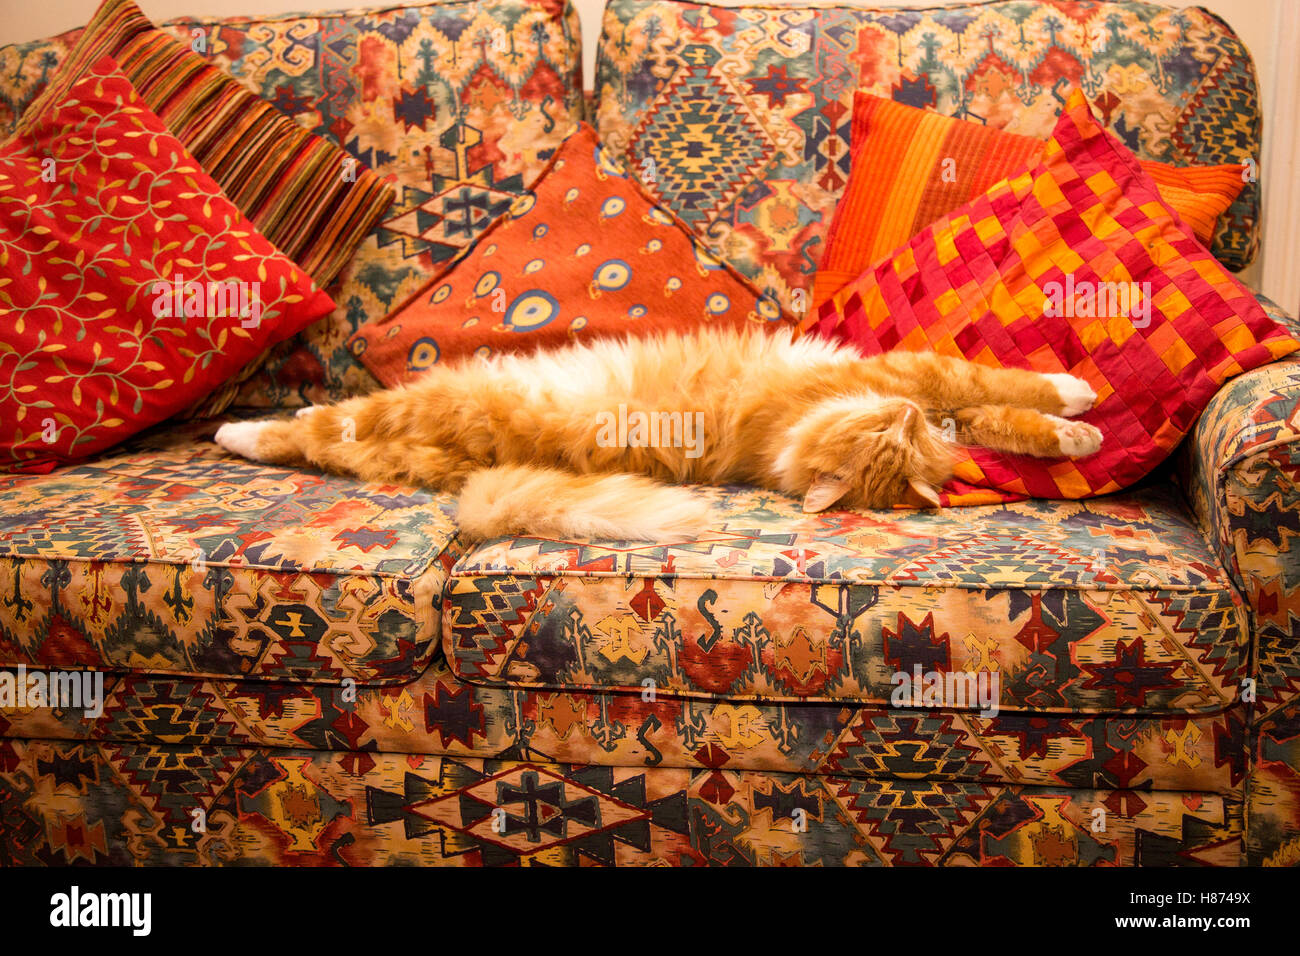 A young ginger cat sleeps on a brightly coloured sofa. - Stock Image